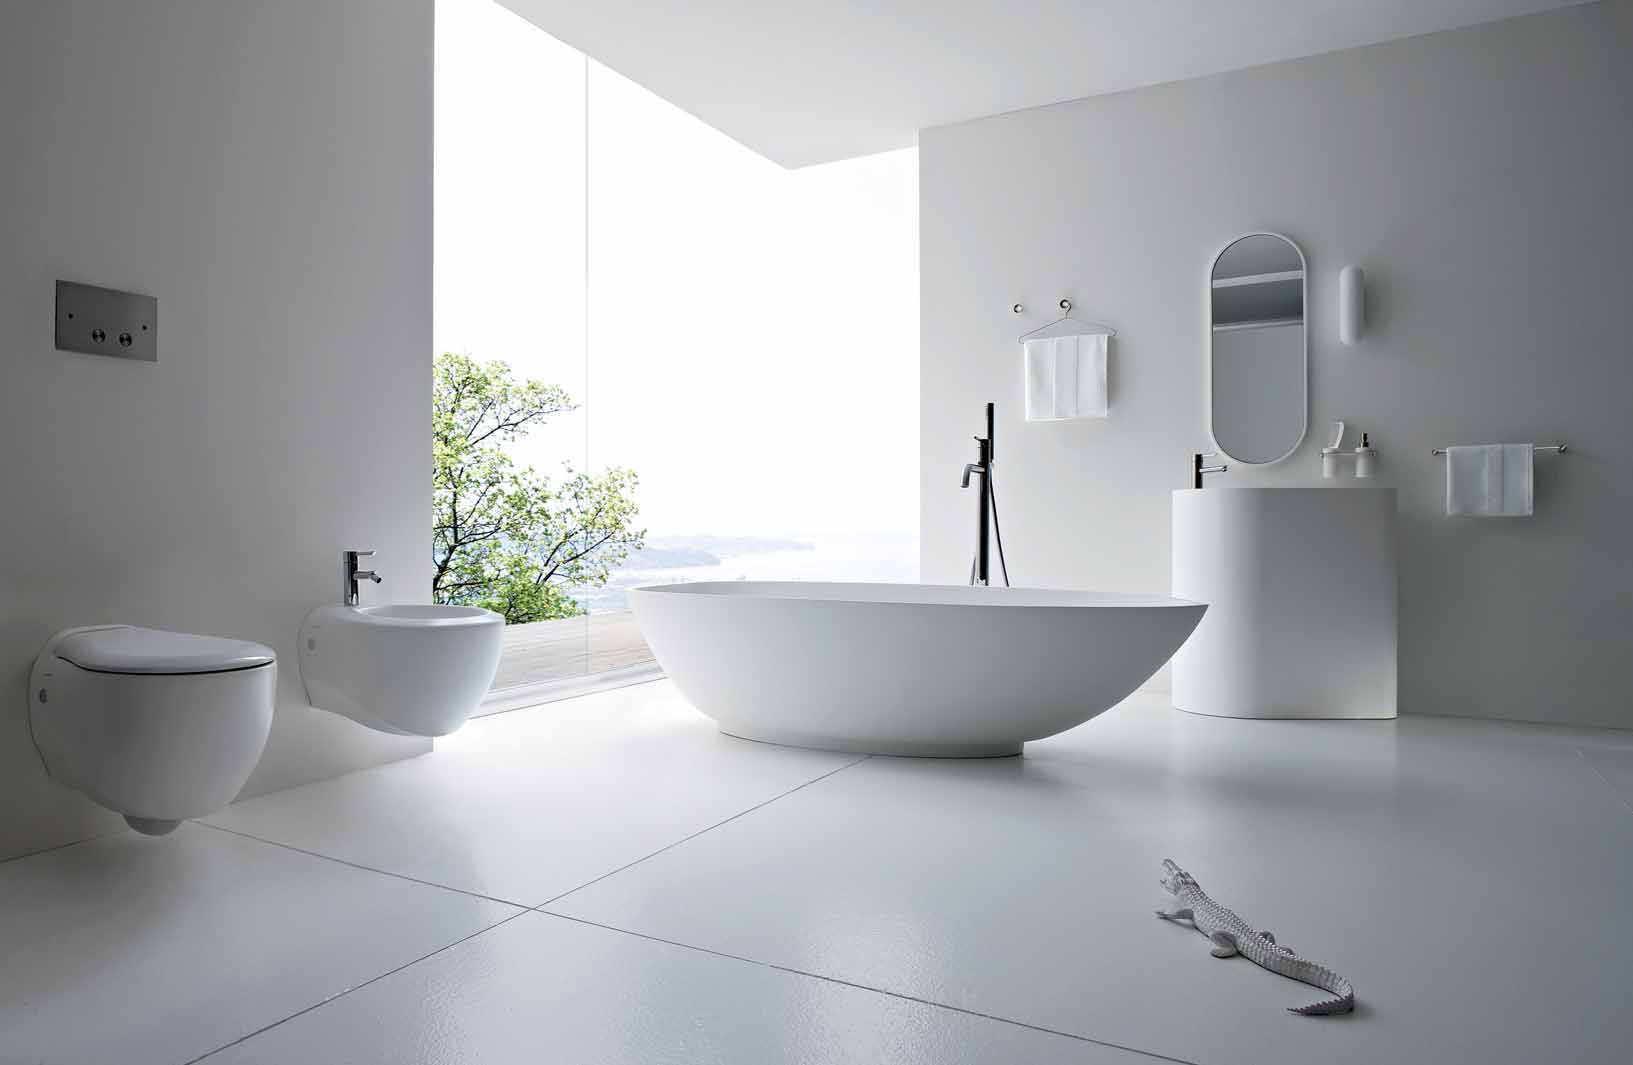 Remarkable Black and White Modern Bathroom Designs 1633 x 1065 · 237 kB · jpeg